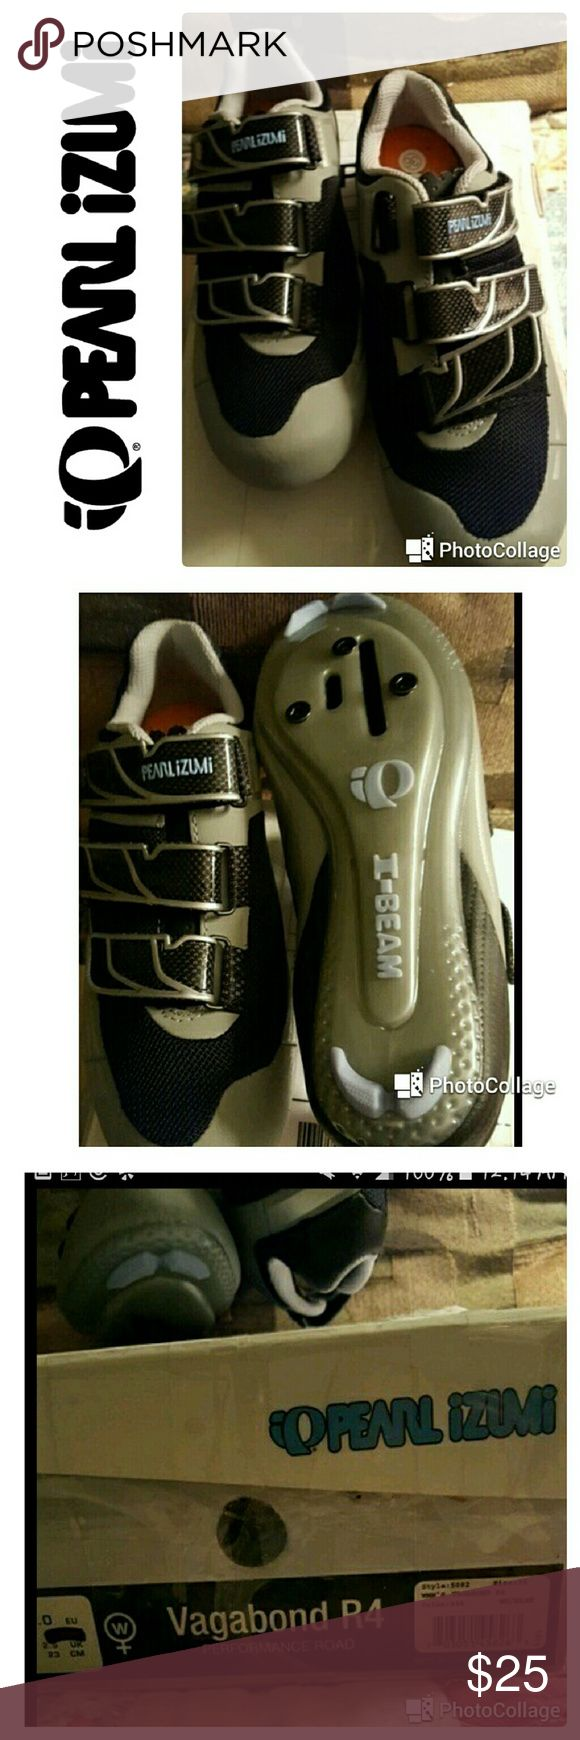 NWOT Pearl Izumi Performance Cycle Shoes NWOT. Pearl Izumi shoes. Vagabond R4 Performance Cycling shoes. Never worn. Nike Shoes Athletic Shoes